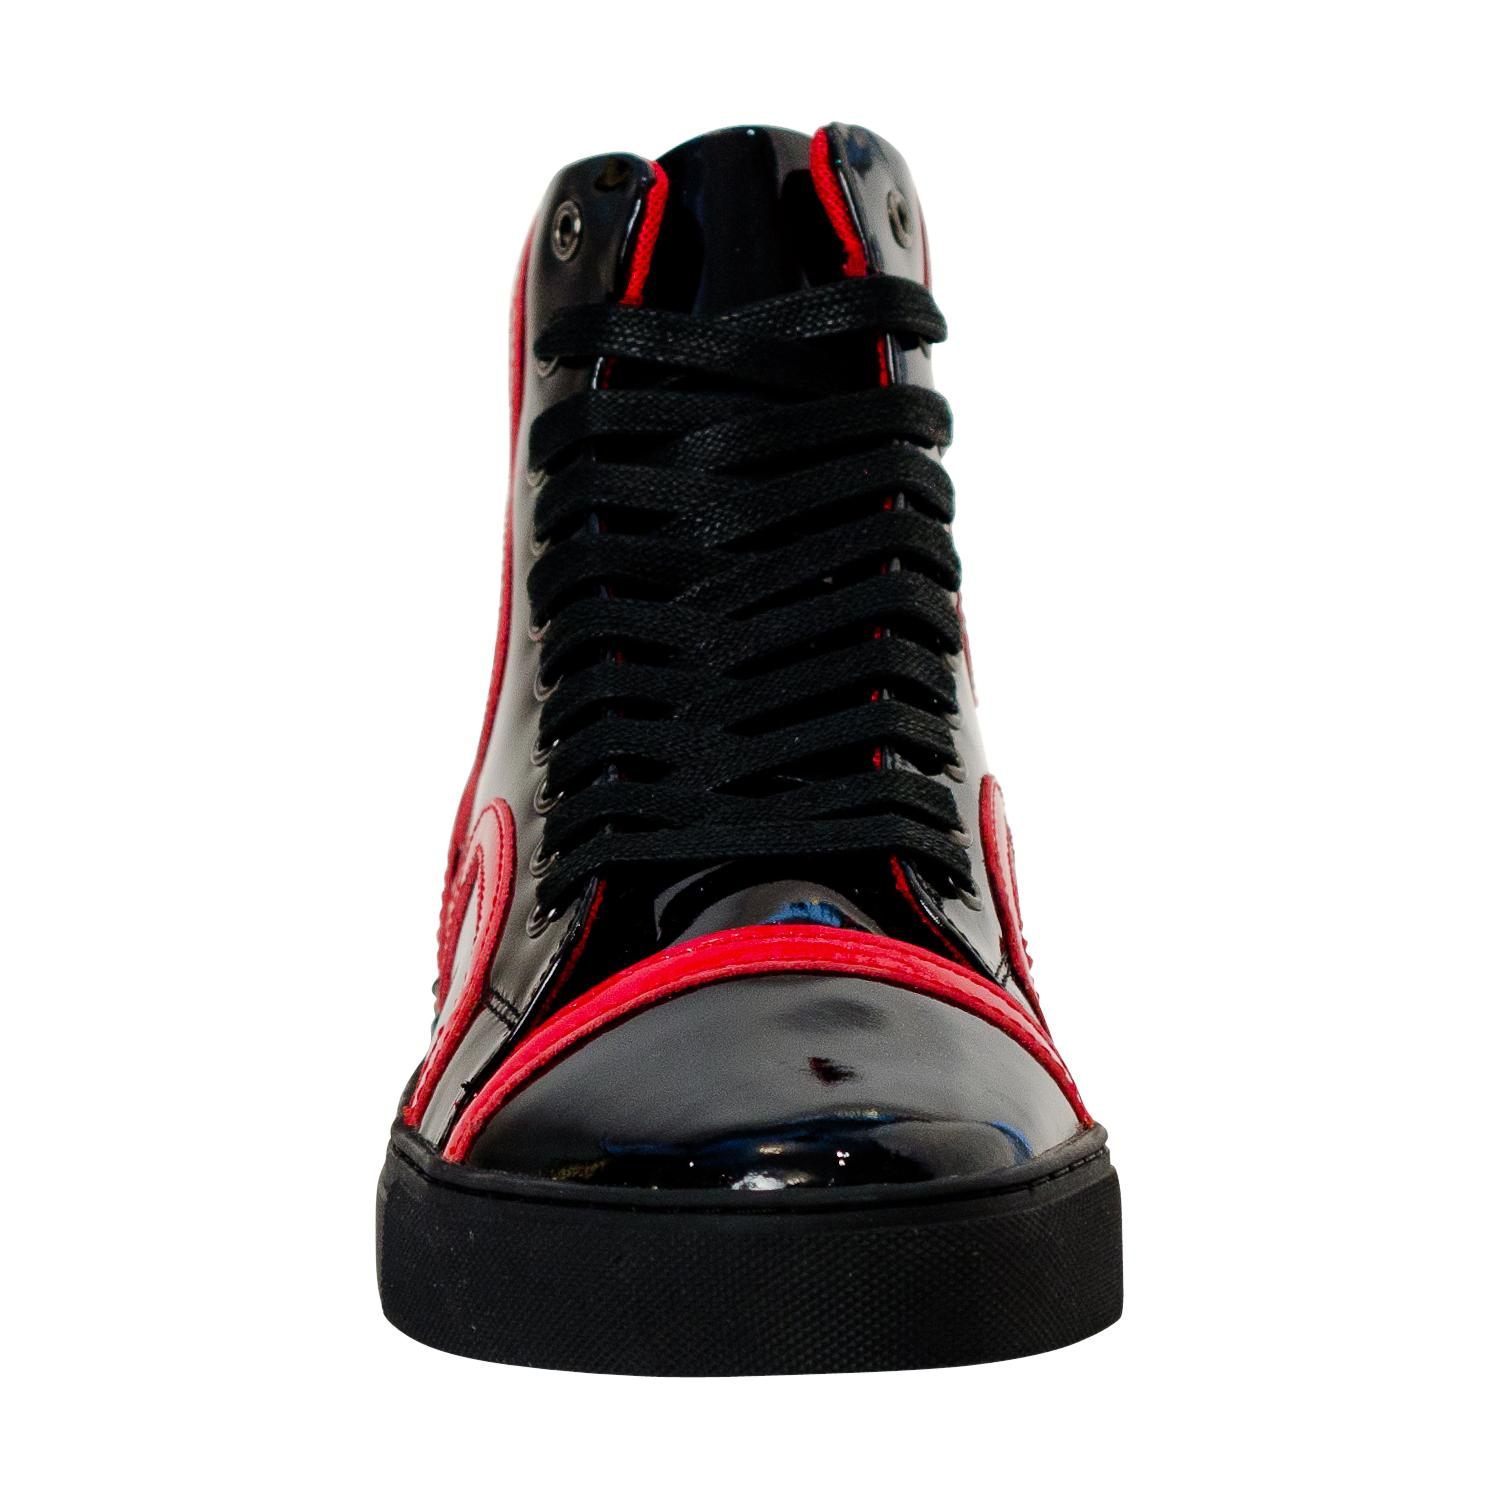 Bogart Black and Red Design Patent Leather High Top